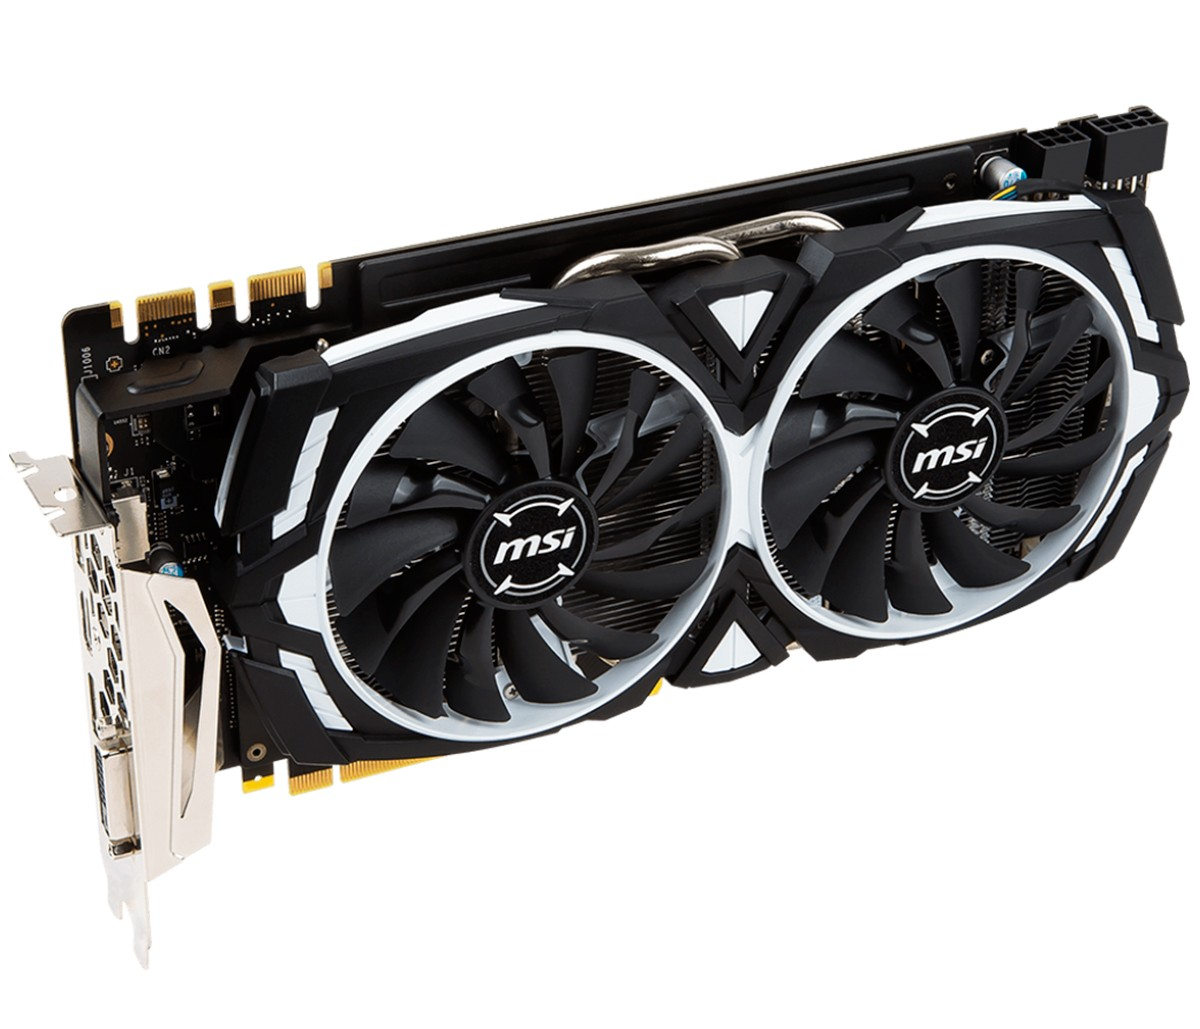 MSI GeForce GTX 1070 Ti Armor 8 GB